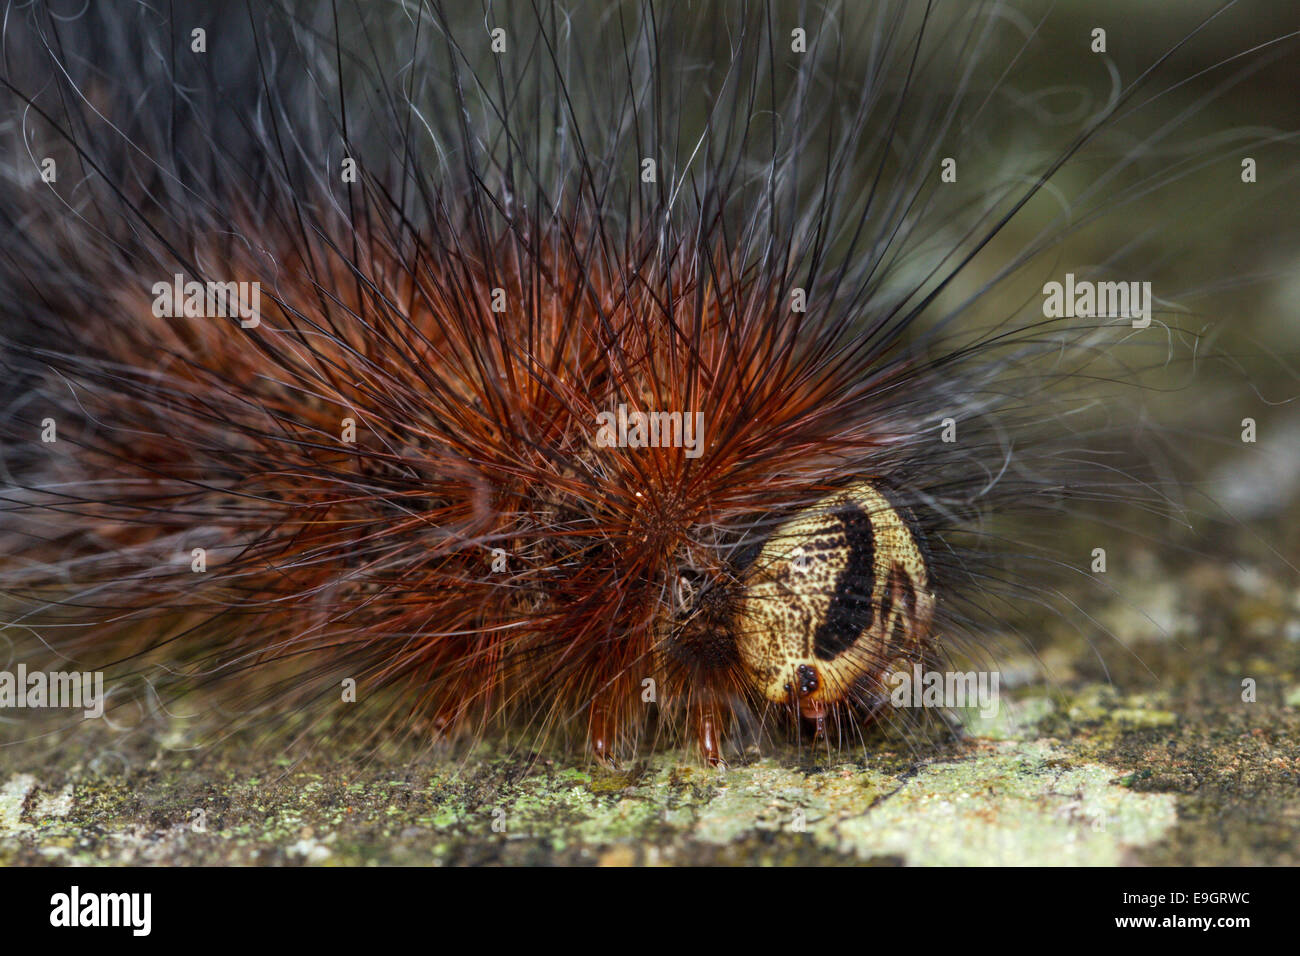 Close up of tropical caterpillar's long fine hair-like setae - urticating bristles or irritating hairs -  in - Stock Image